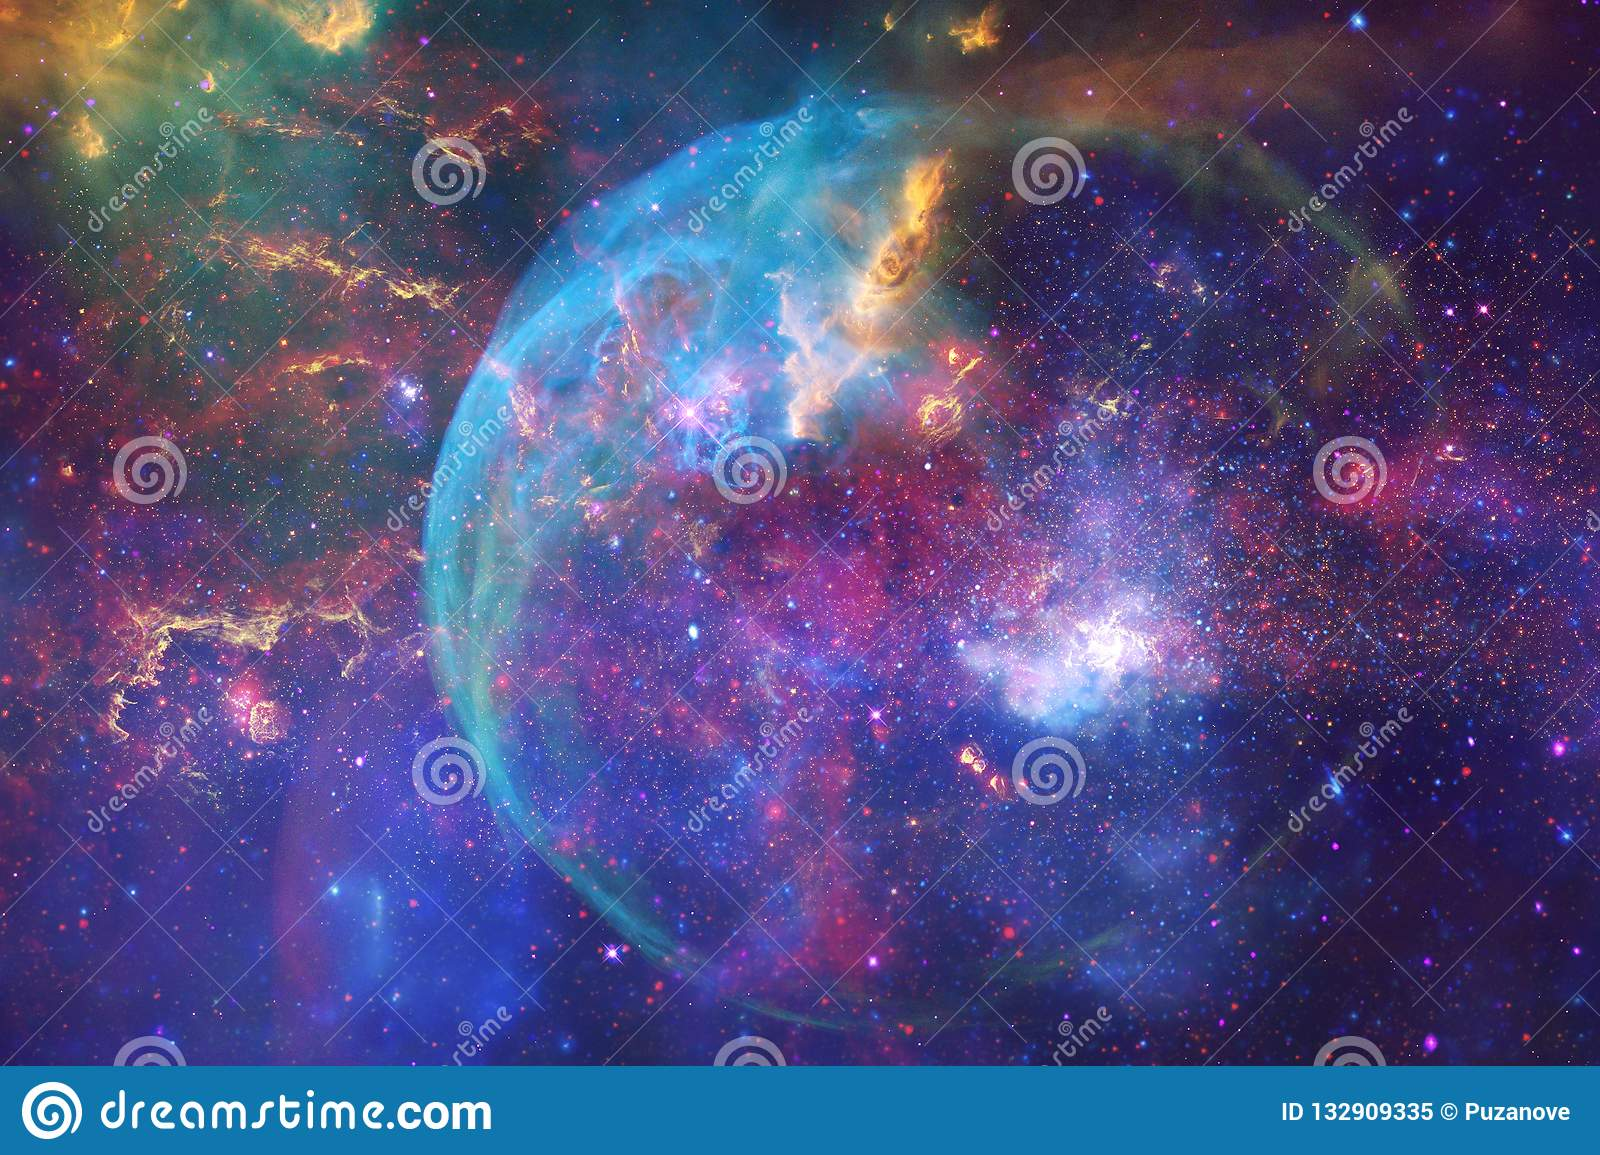 Deep Space Science Fiction Fantasy In High Resolution Ideal